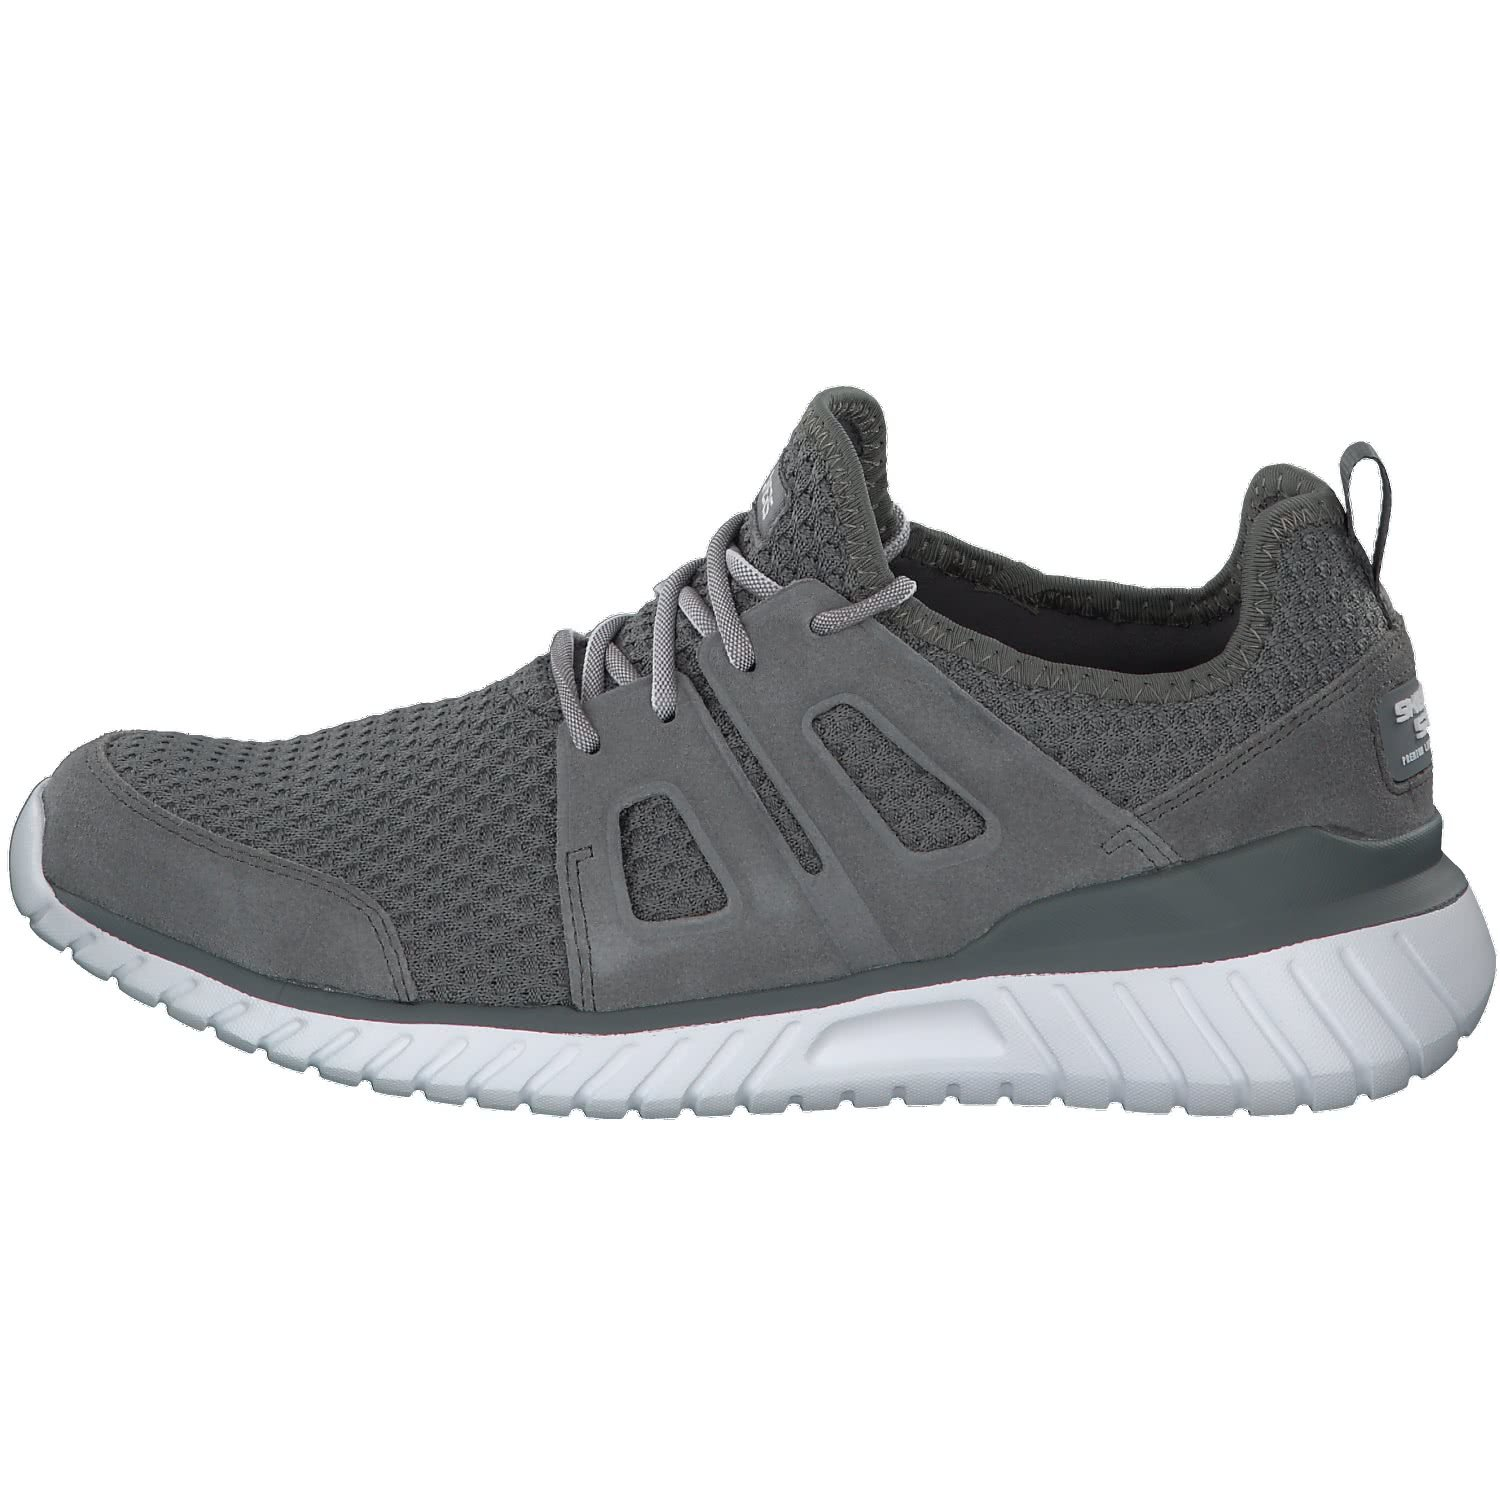 Skechers Herren Sneaker Rough Cut Grau Grau (Charcoal)